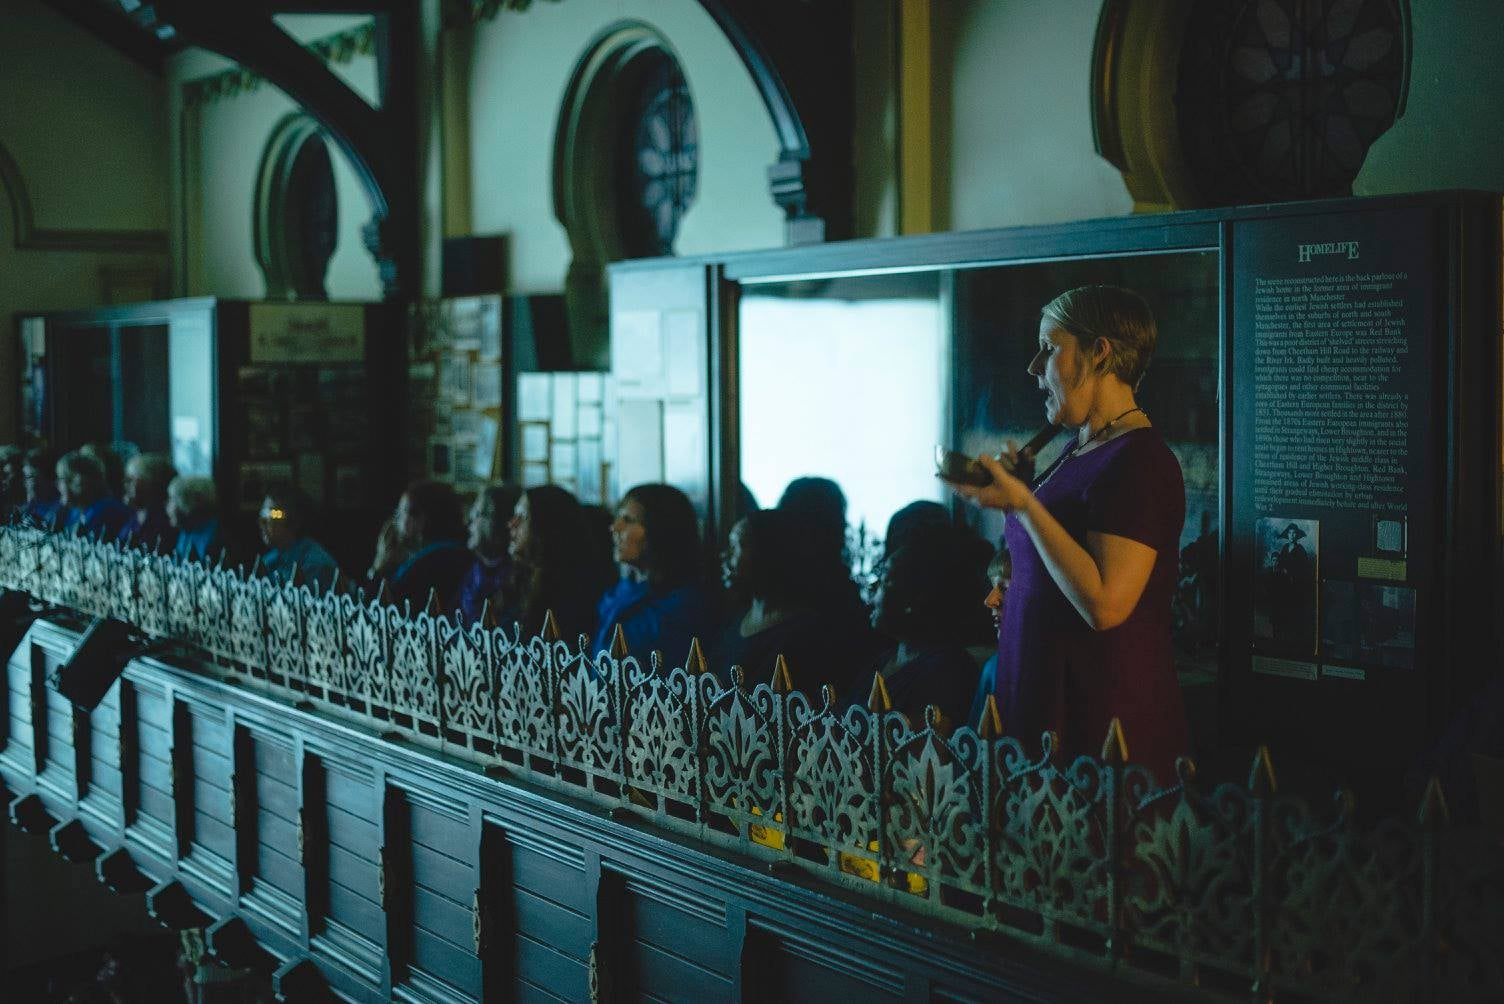 Sacred Sounds Women's Choir perform their specially composed score to  In Search of Silent Landscapes  as part of Video Jam at Manchester Jewish Museum. Photo: Drew Forsyth.